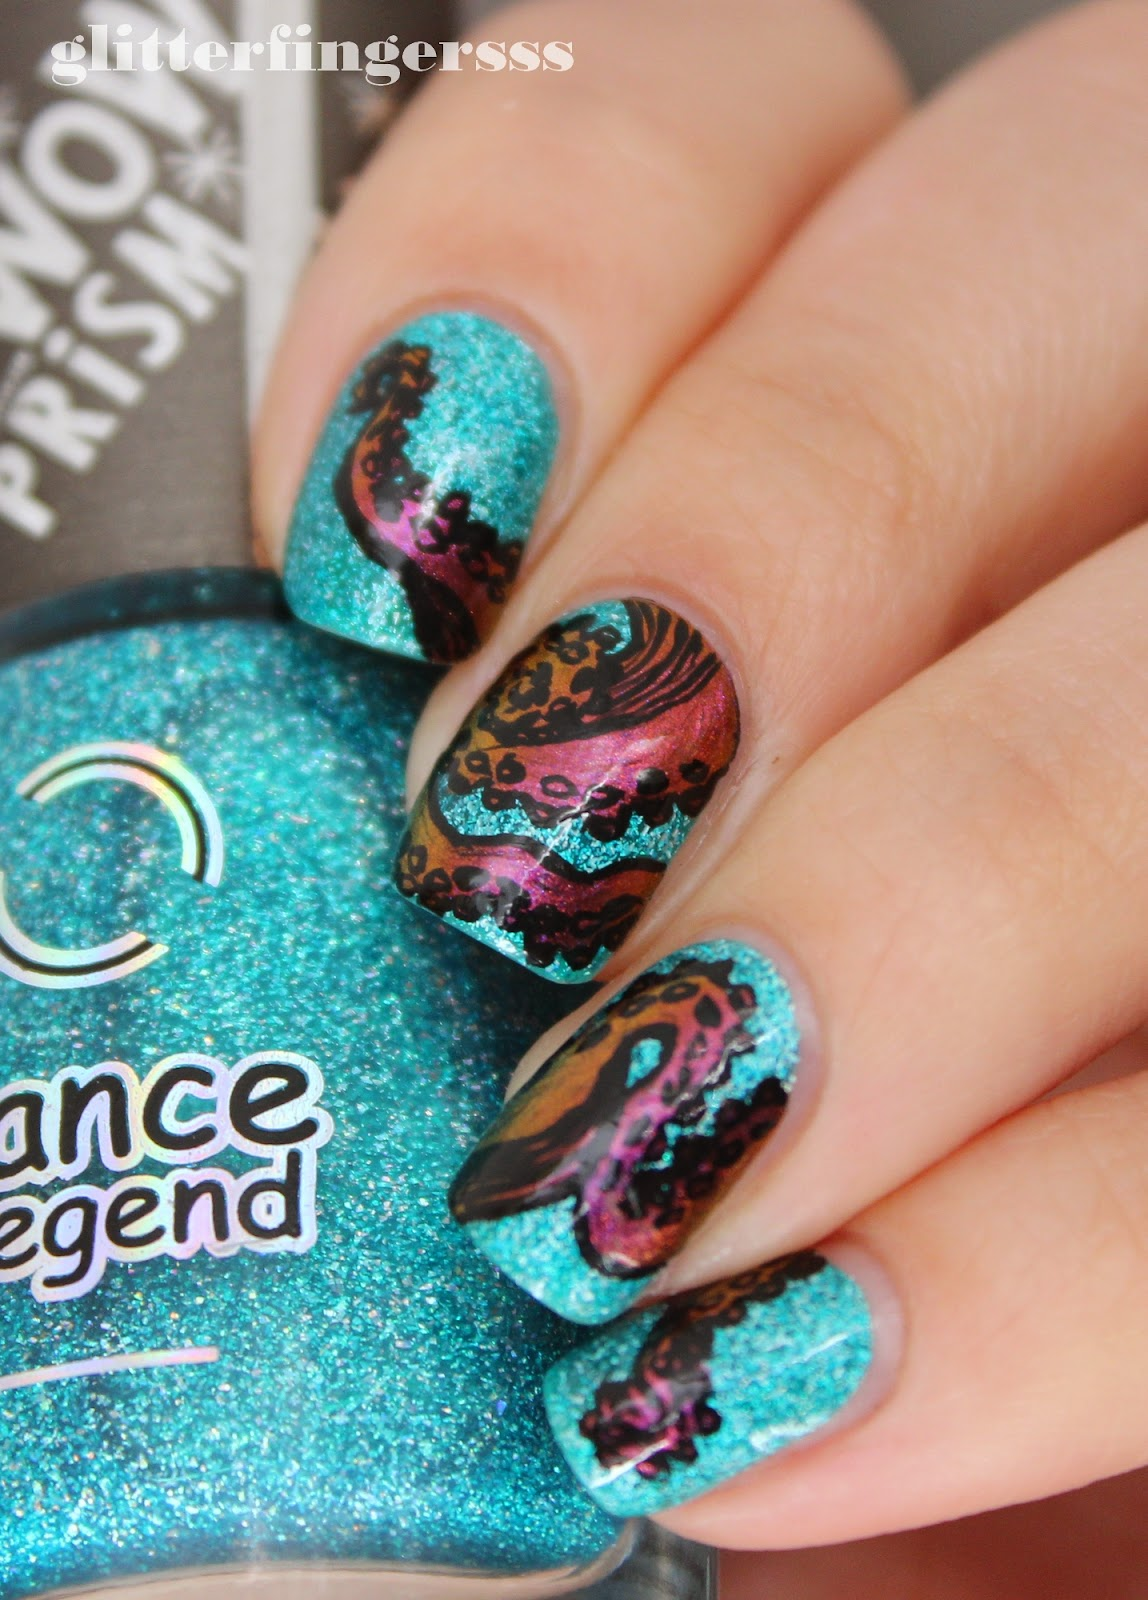 Nail art octopus glitterfingersss in english anyways despite the color i really like it prinsesfo Image collections